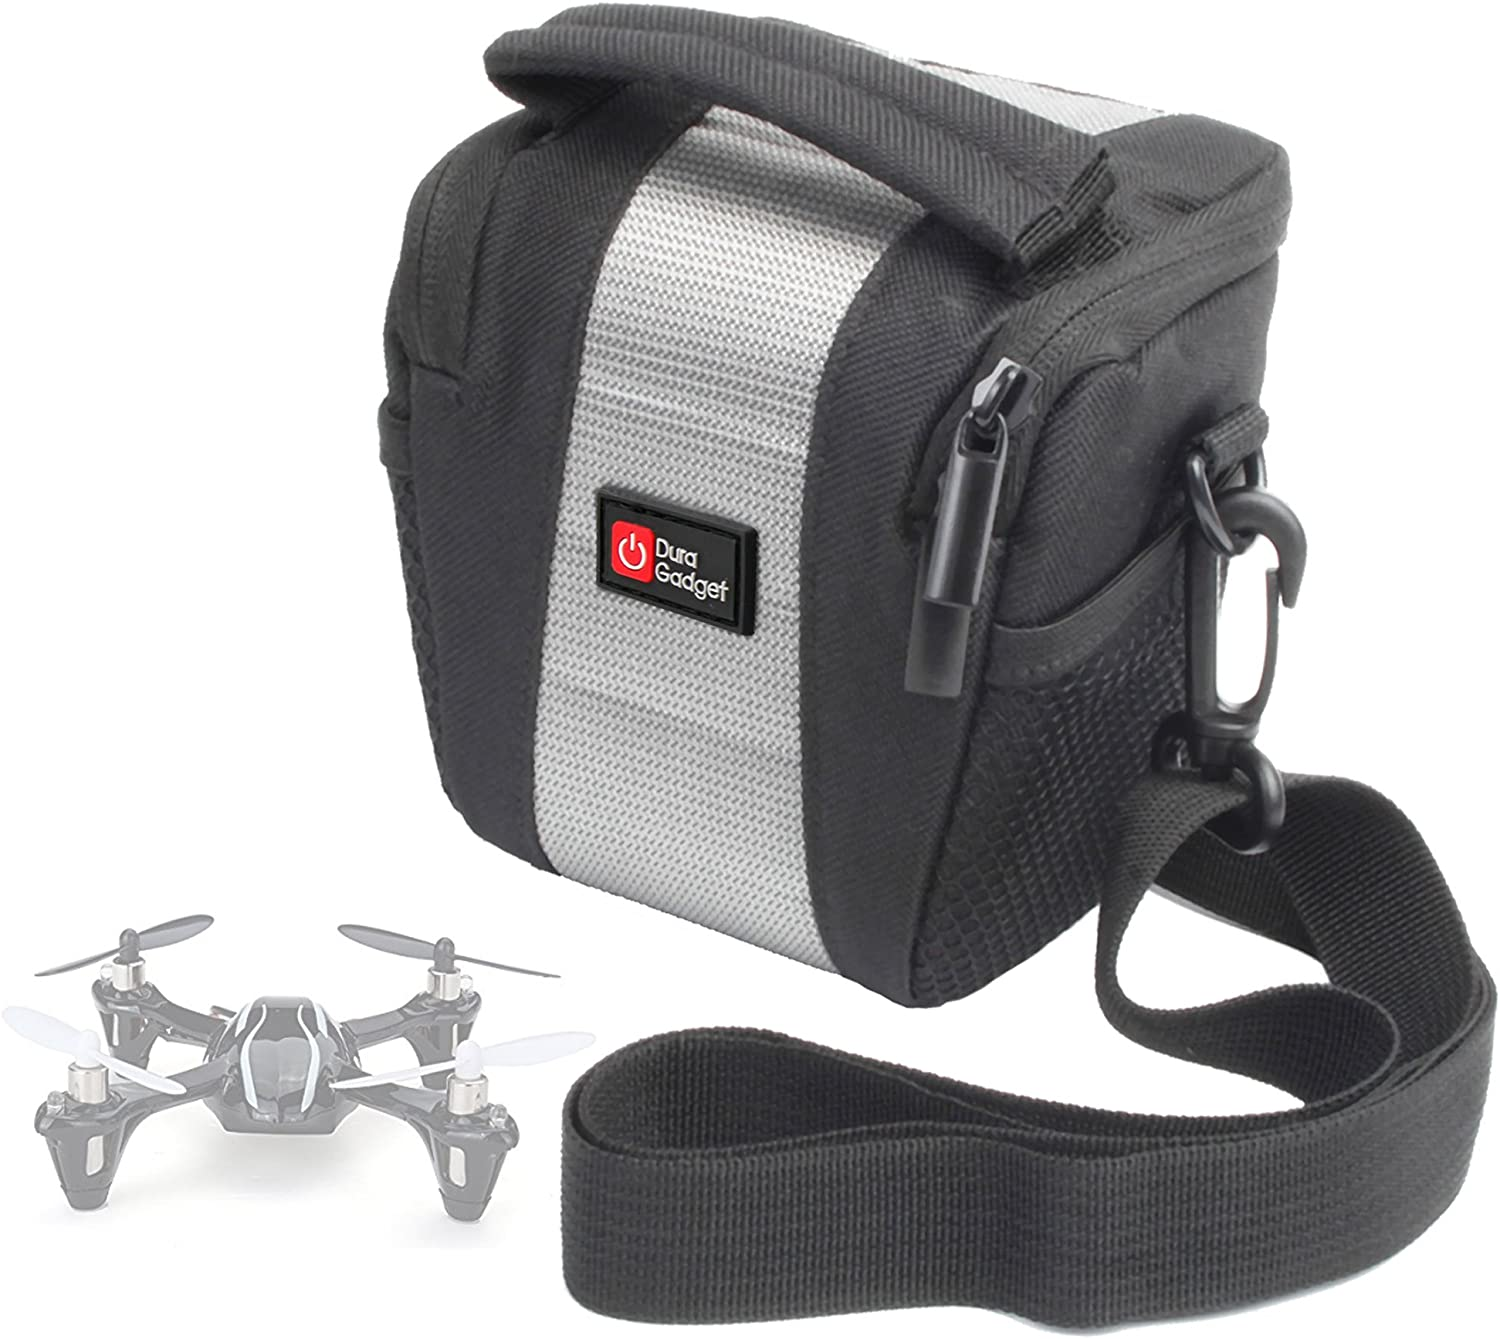 DURAGADGET Water-Resistant Black /& Grey Cross-Body Carry Bag Compatible with The AFUNTA Mini 993 Quadcopter